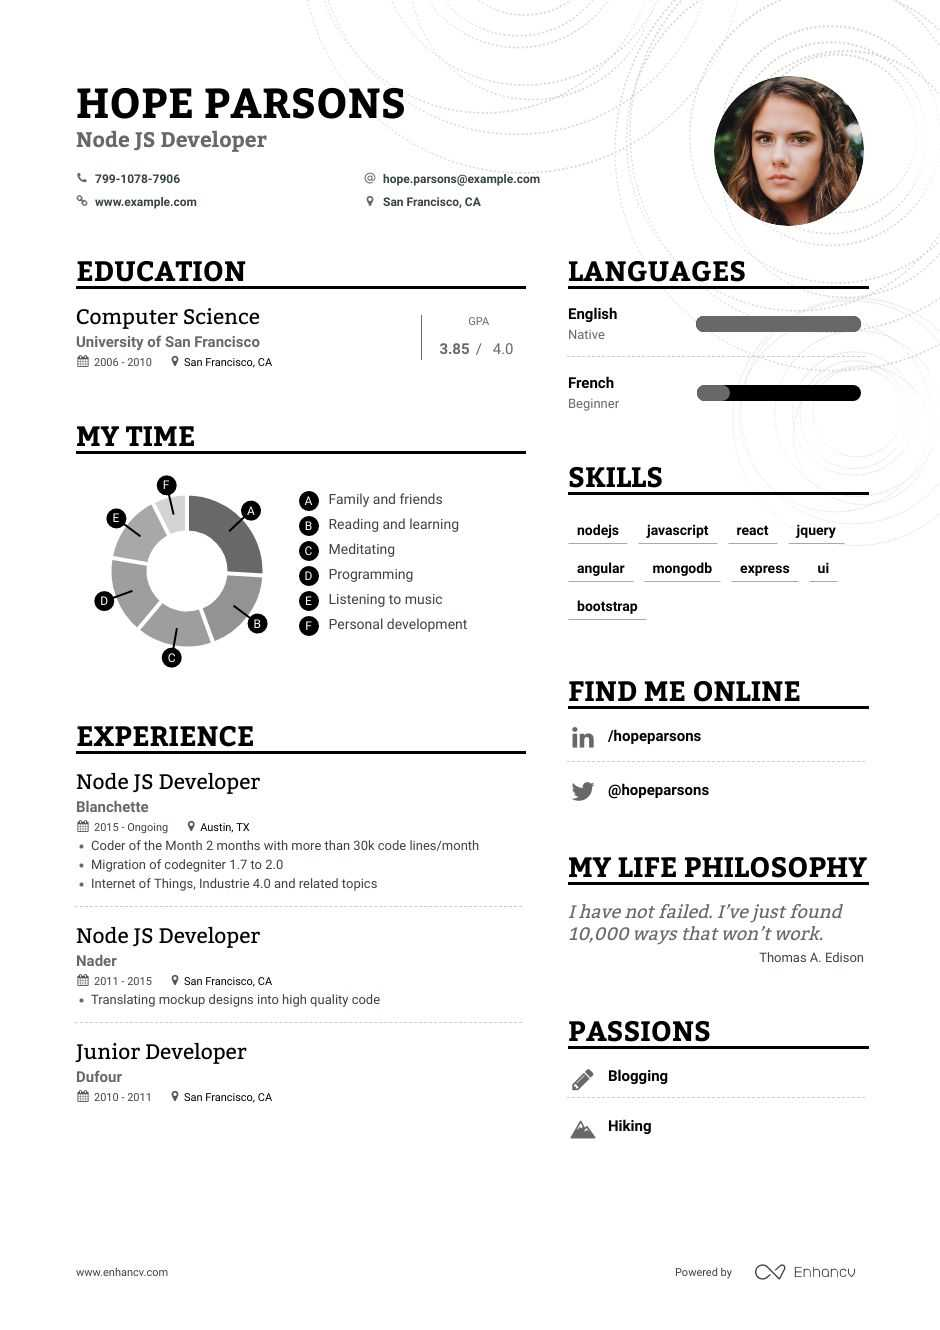 node js developer resume example